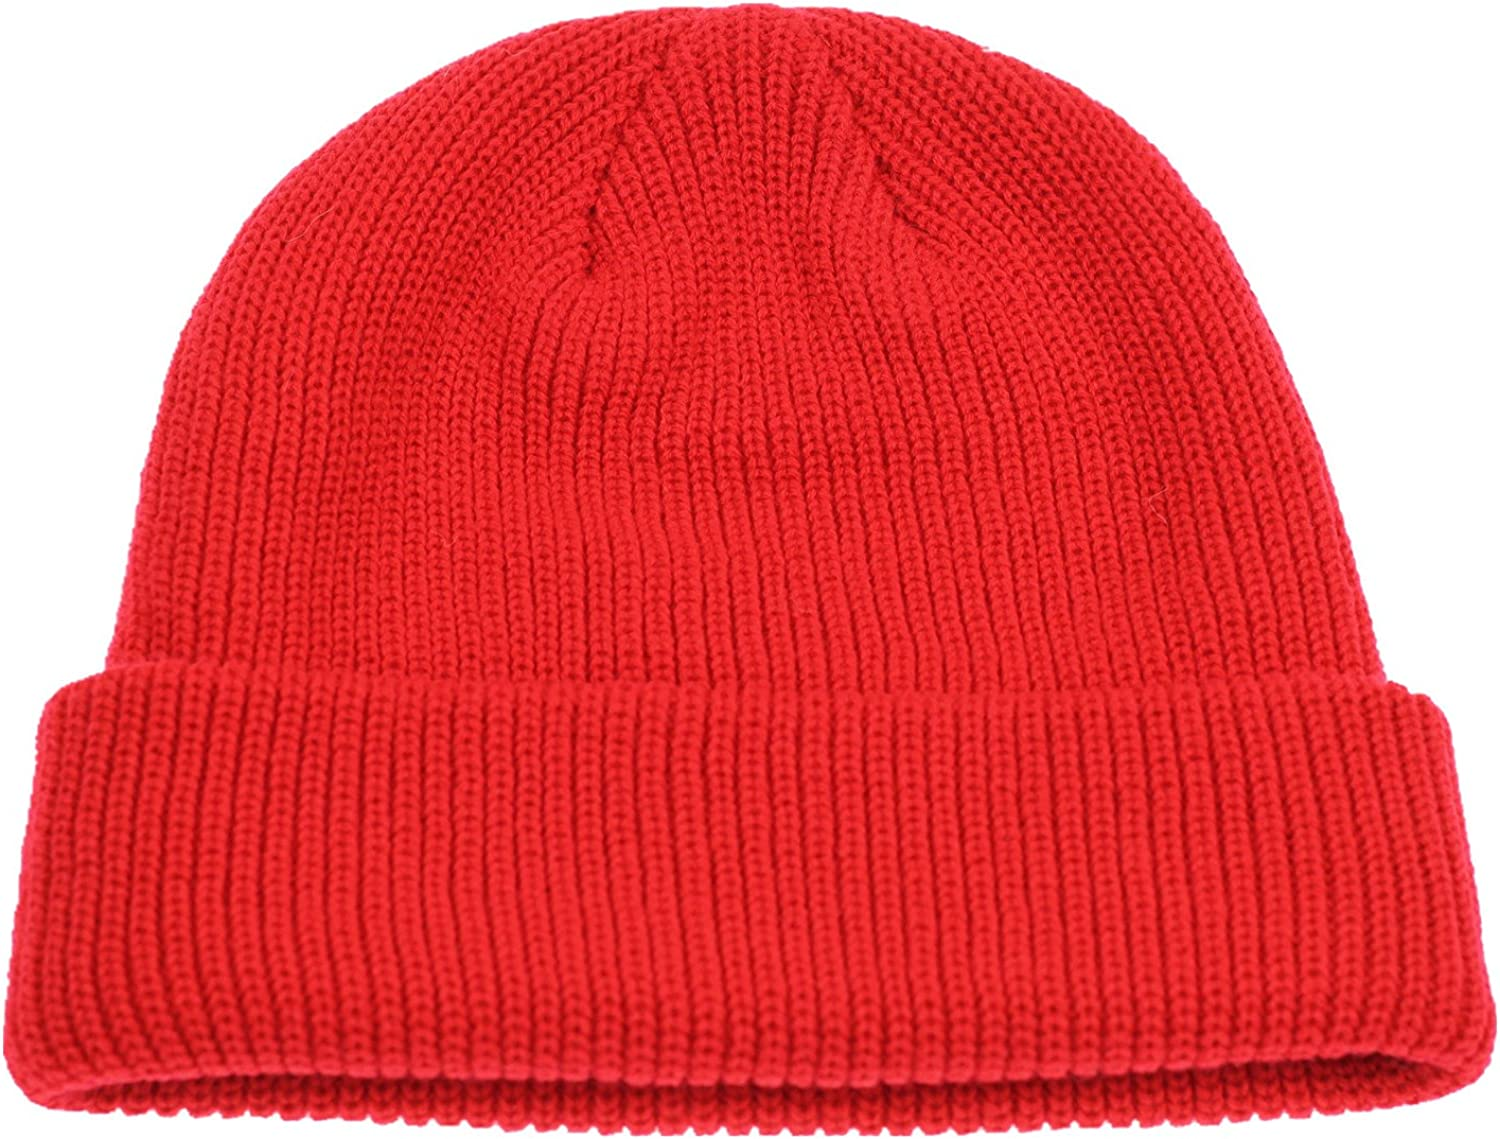 Connectyle Outdoor Classic Bassic Men 's Warm Winter Hats Daily Thick Knit Cuff Beanie Cap Red, 55 60cm: Clothing